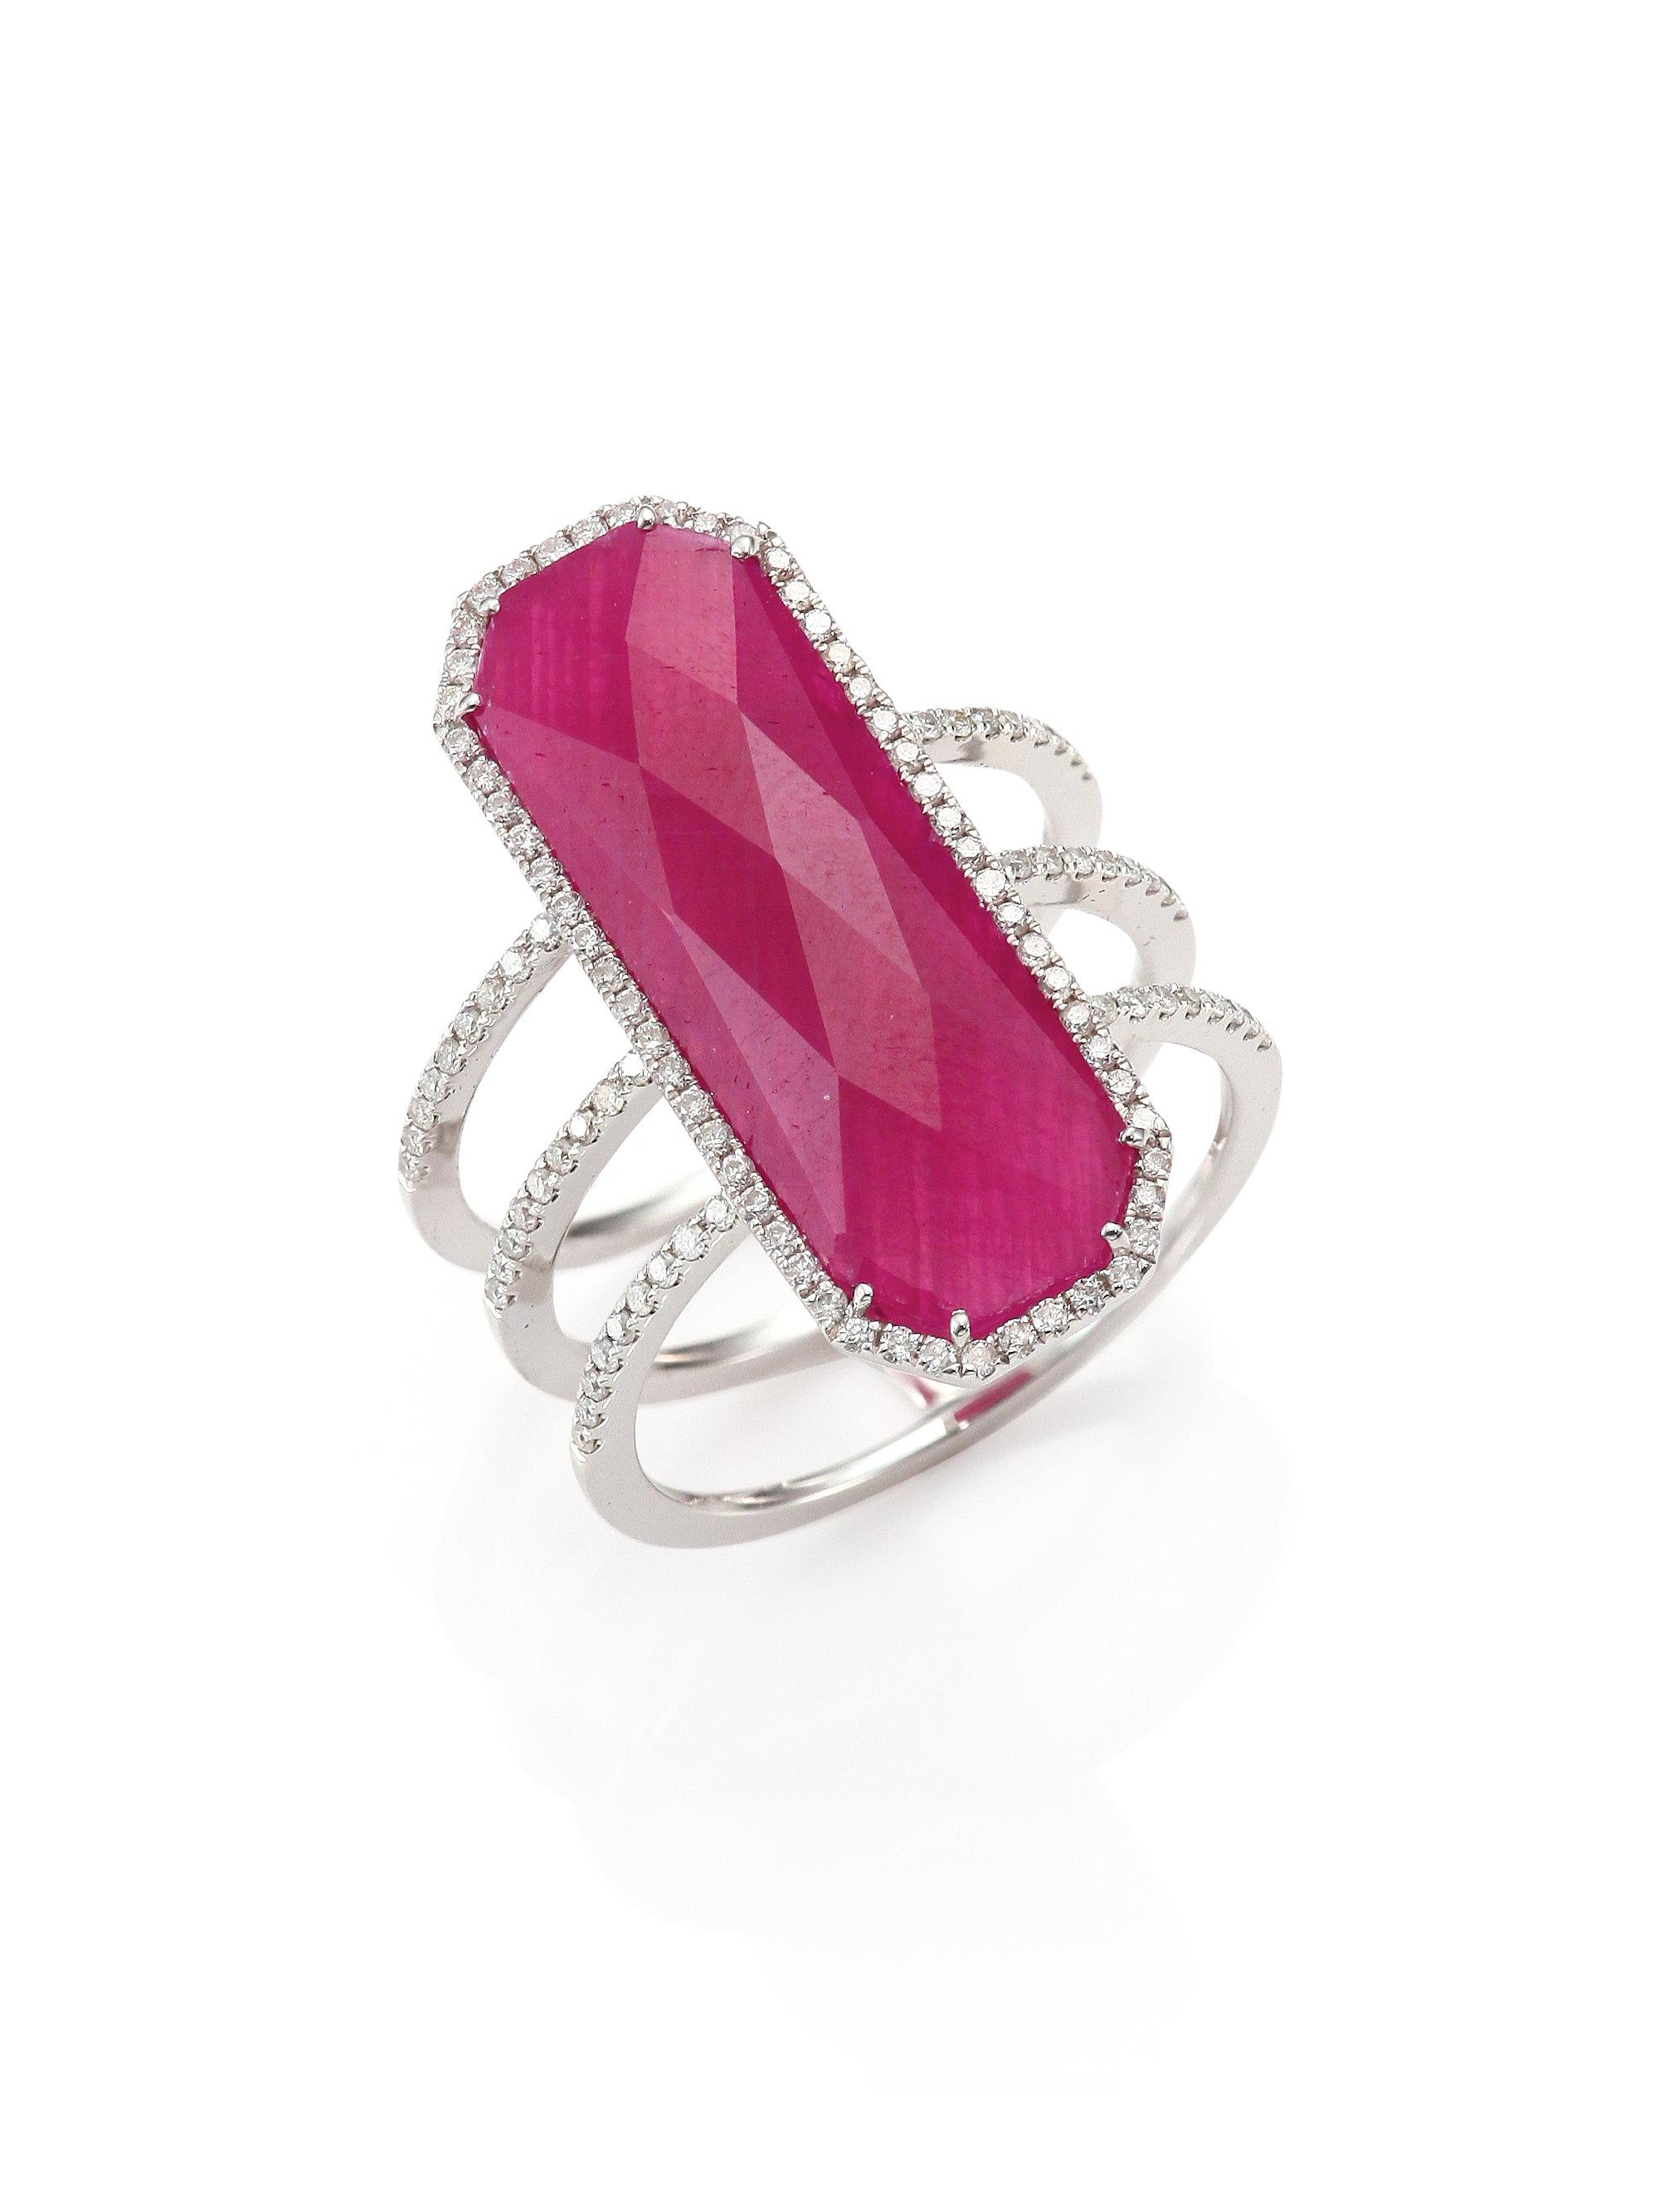 Lyst - Meira T Ruby, Pave Diamond, 14k White Gold & Silver Ring in Pink